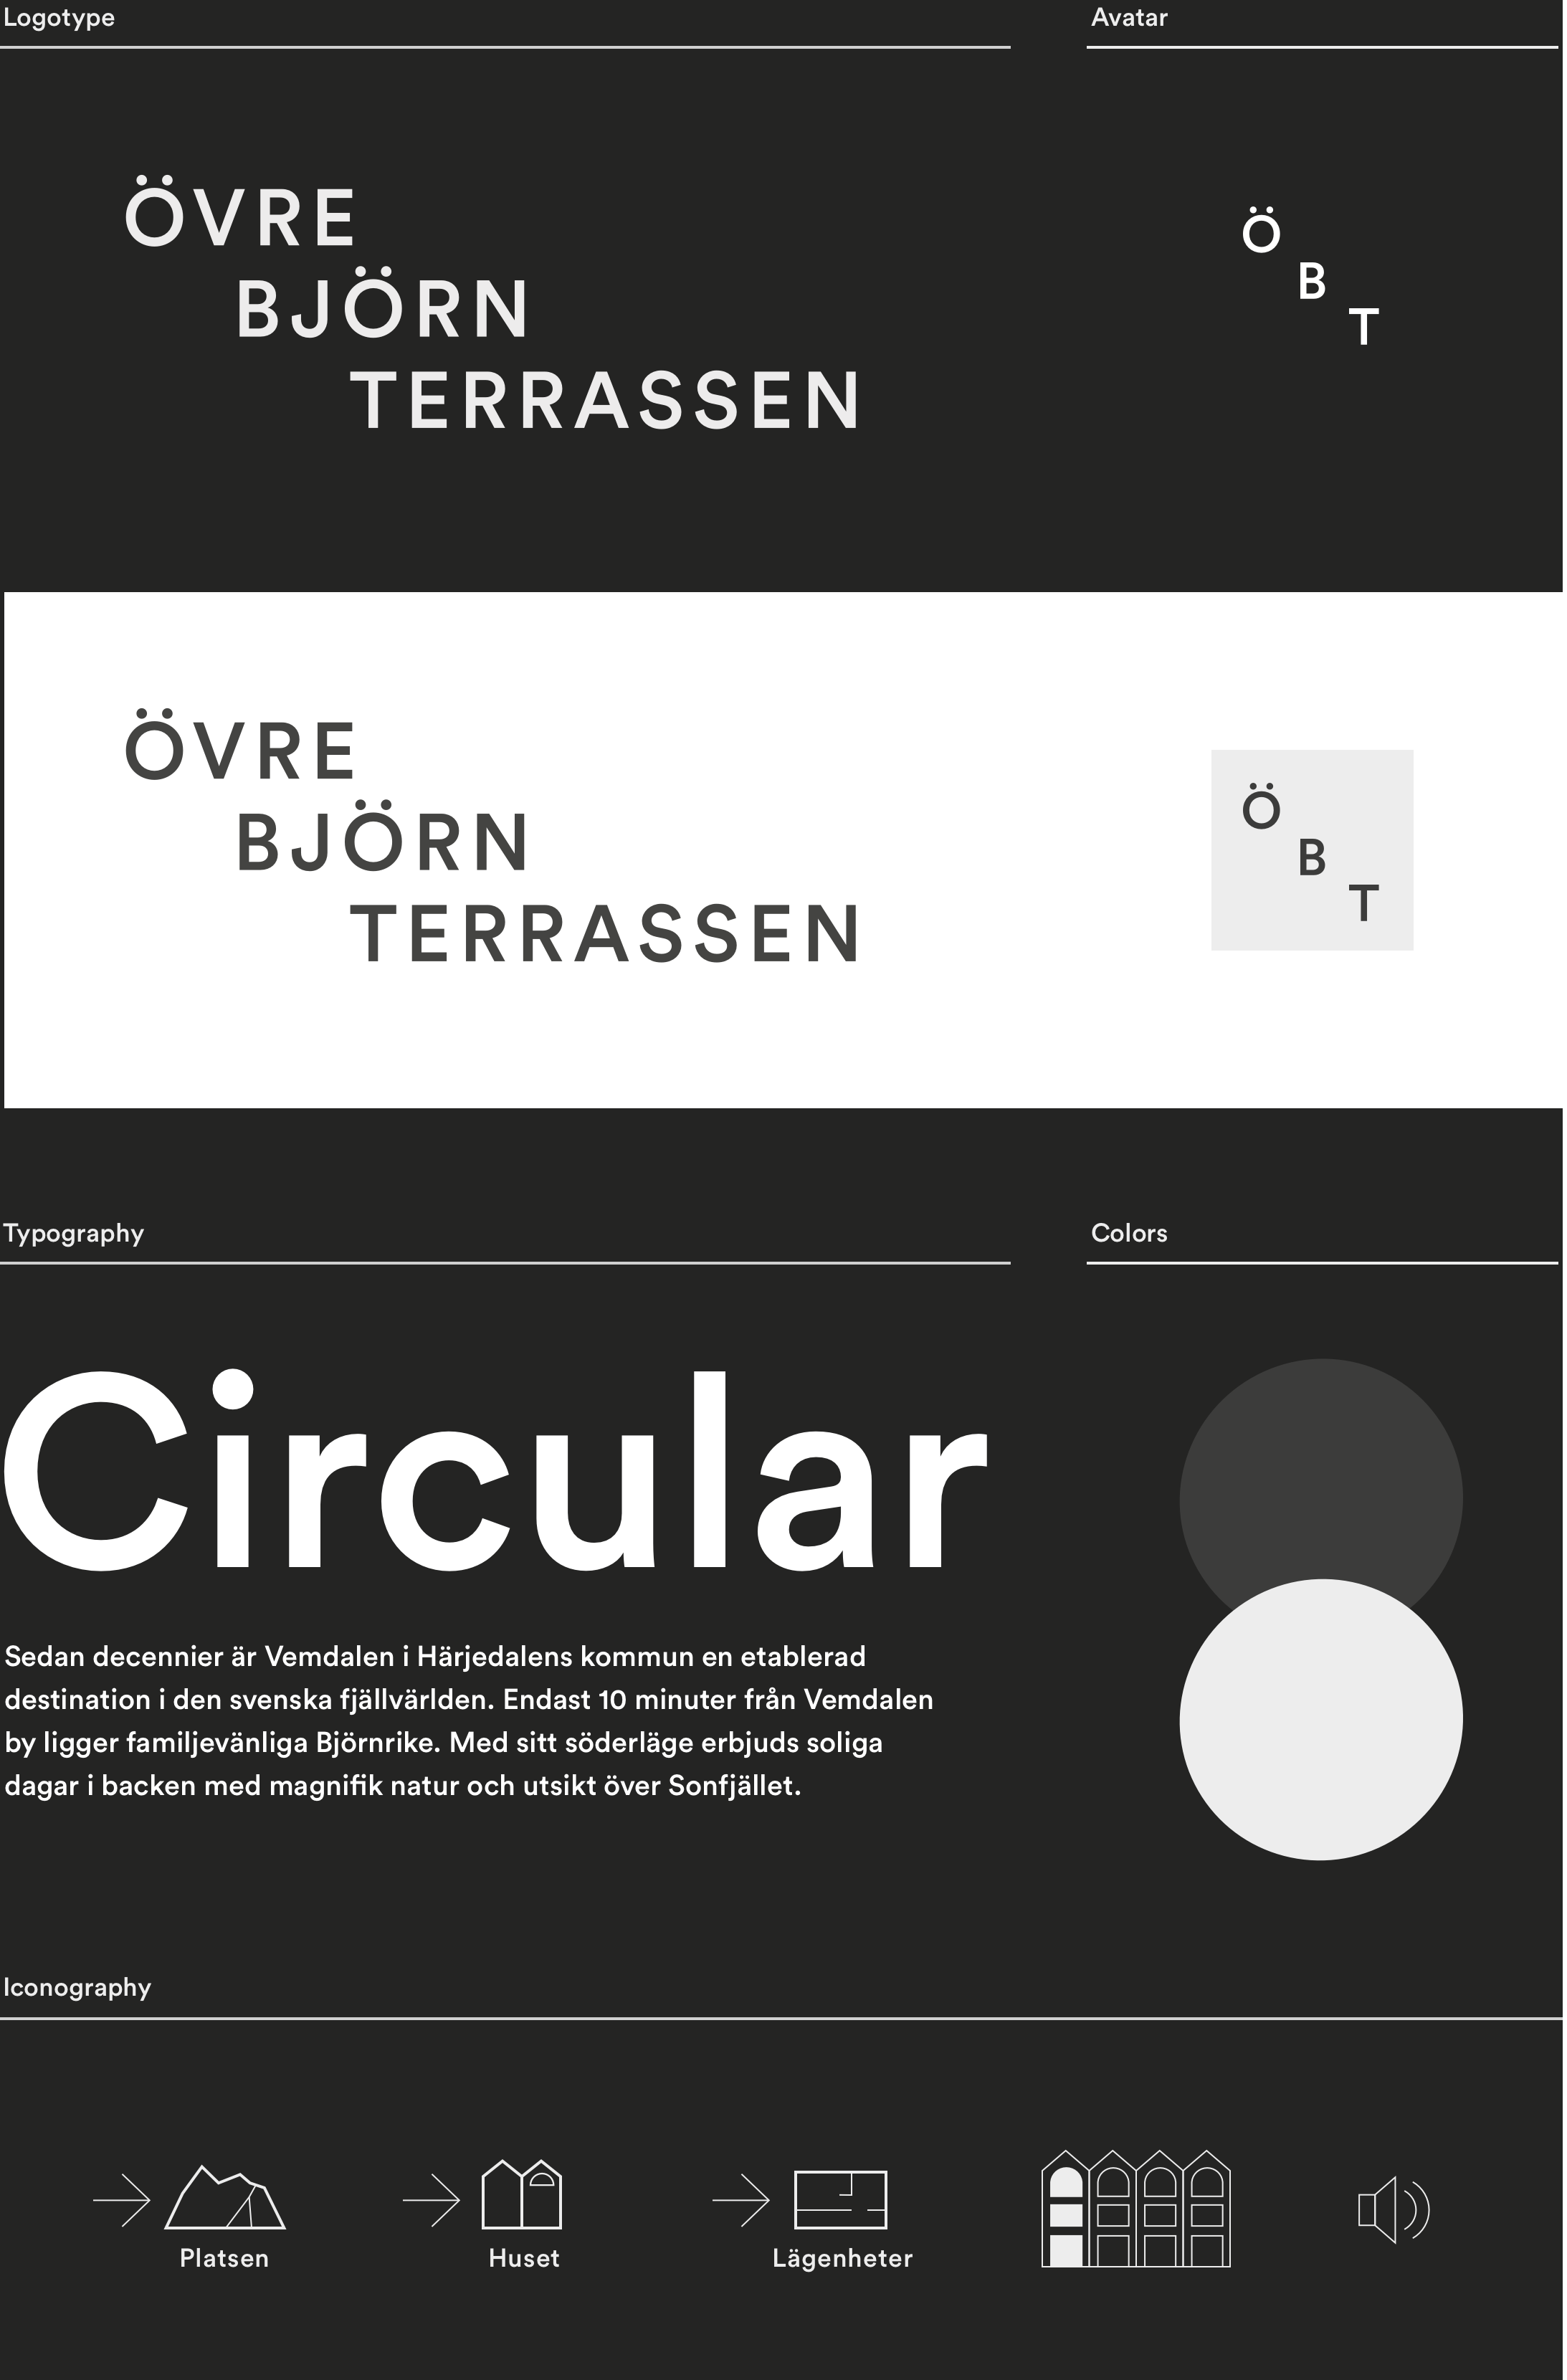 Digital design for Fahlander Architects and Övre Björnterrassen. Material from the process showing logotype, avatar, typography, colors and iconography.